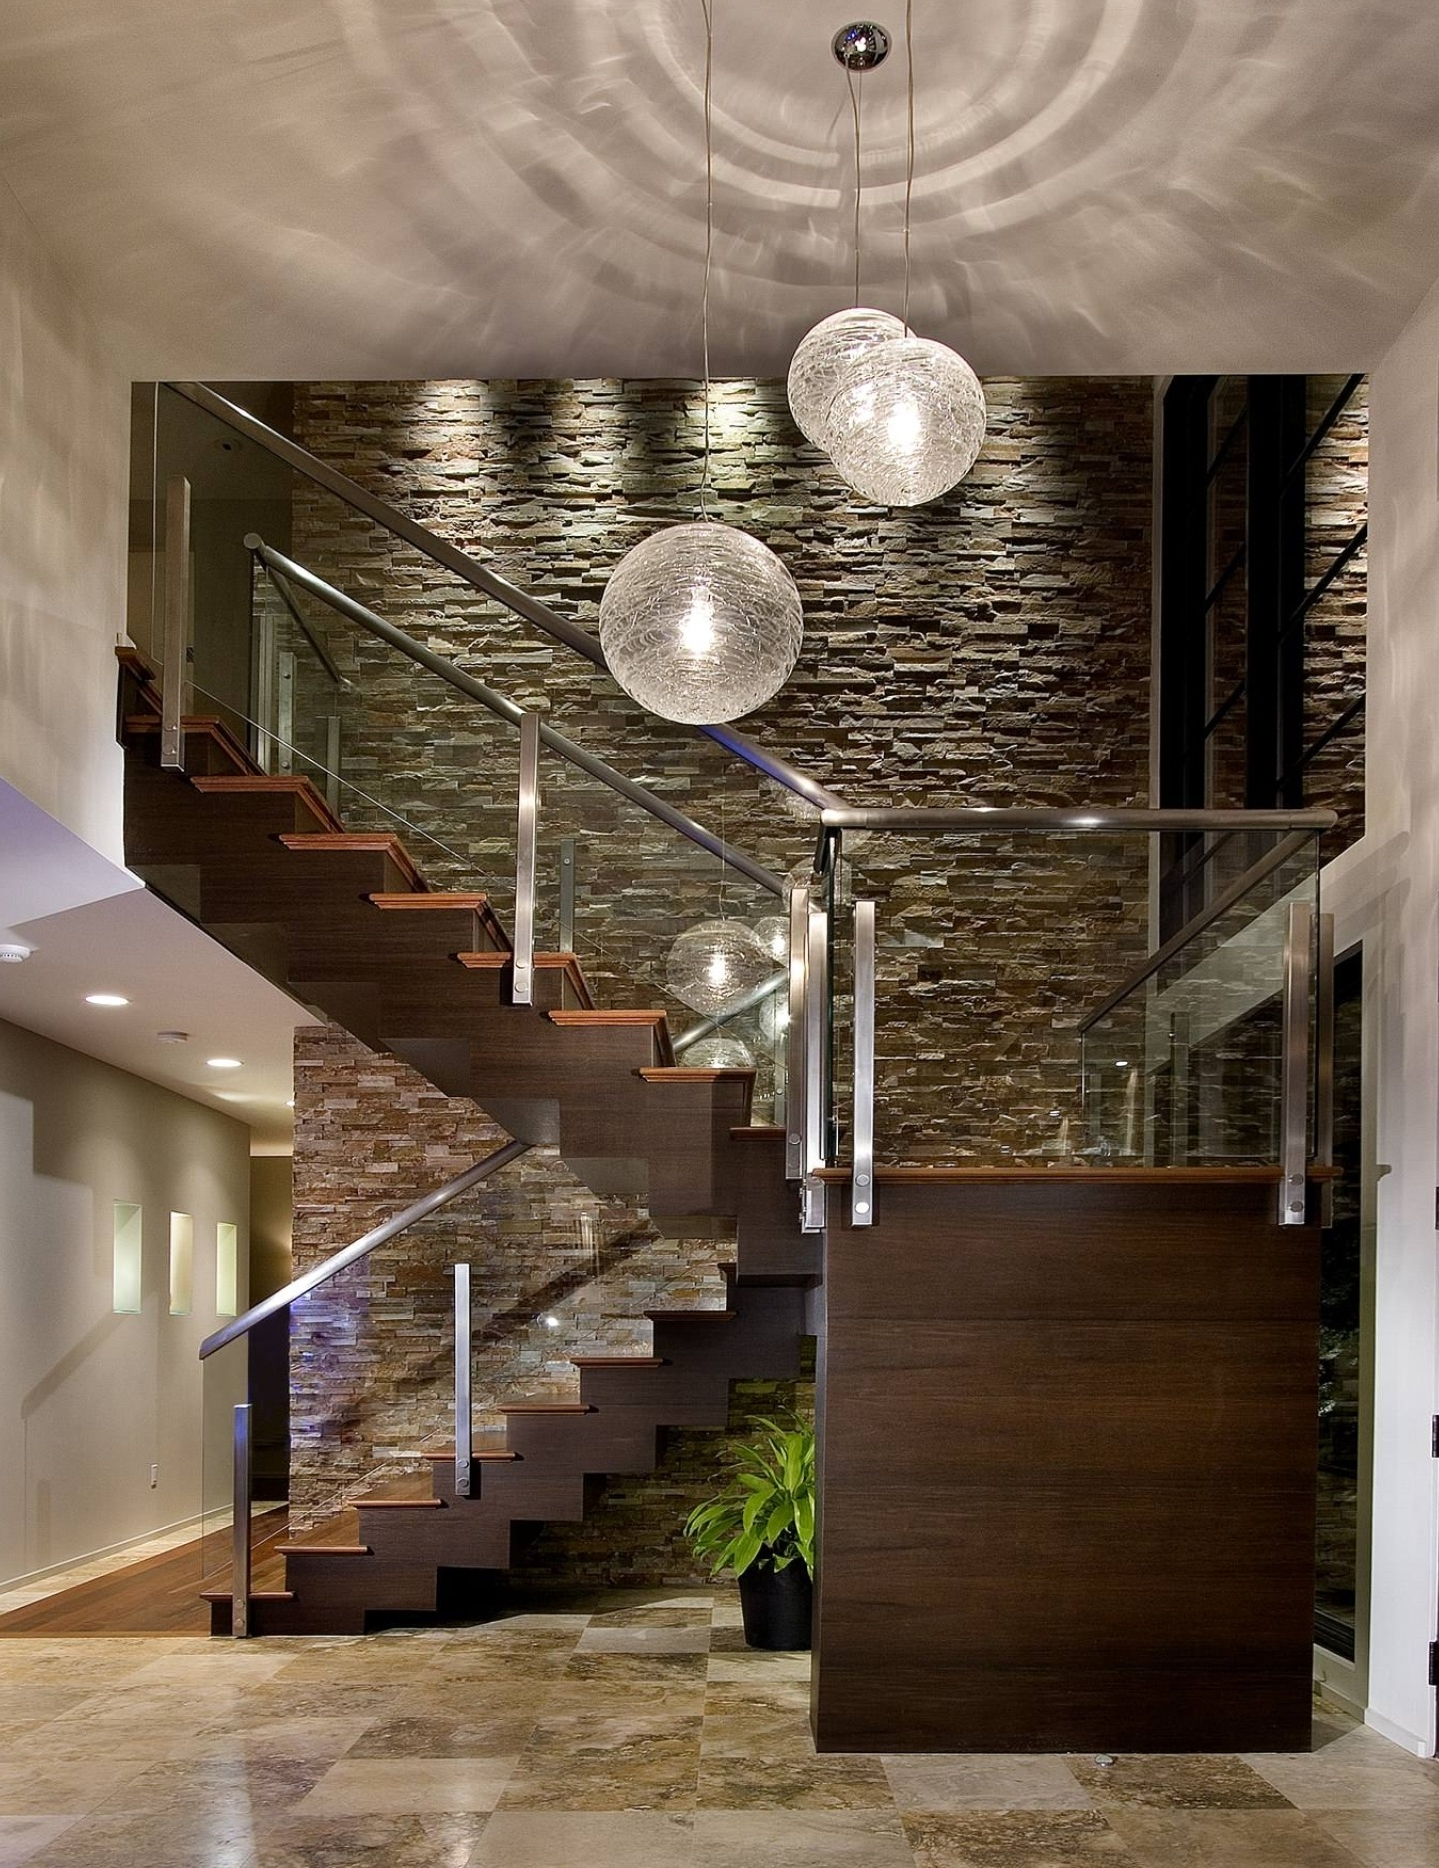 Extra High Ceilings, Glass Stairwell, Long Chandeliers, Enters Into inside Best and Newest Stairwell Chandeliers